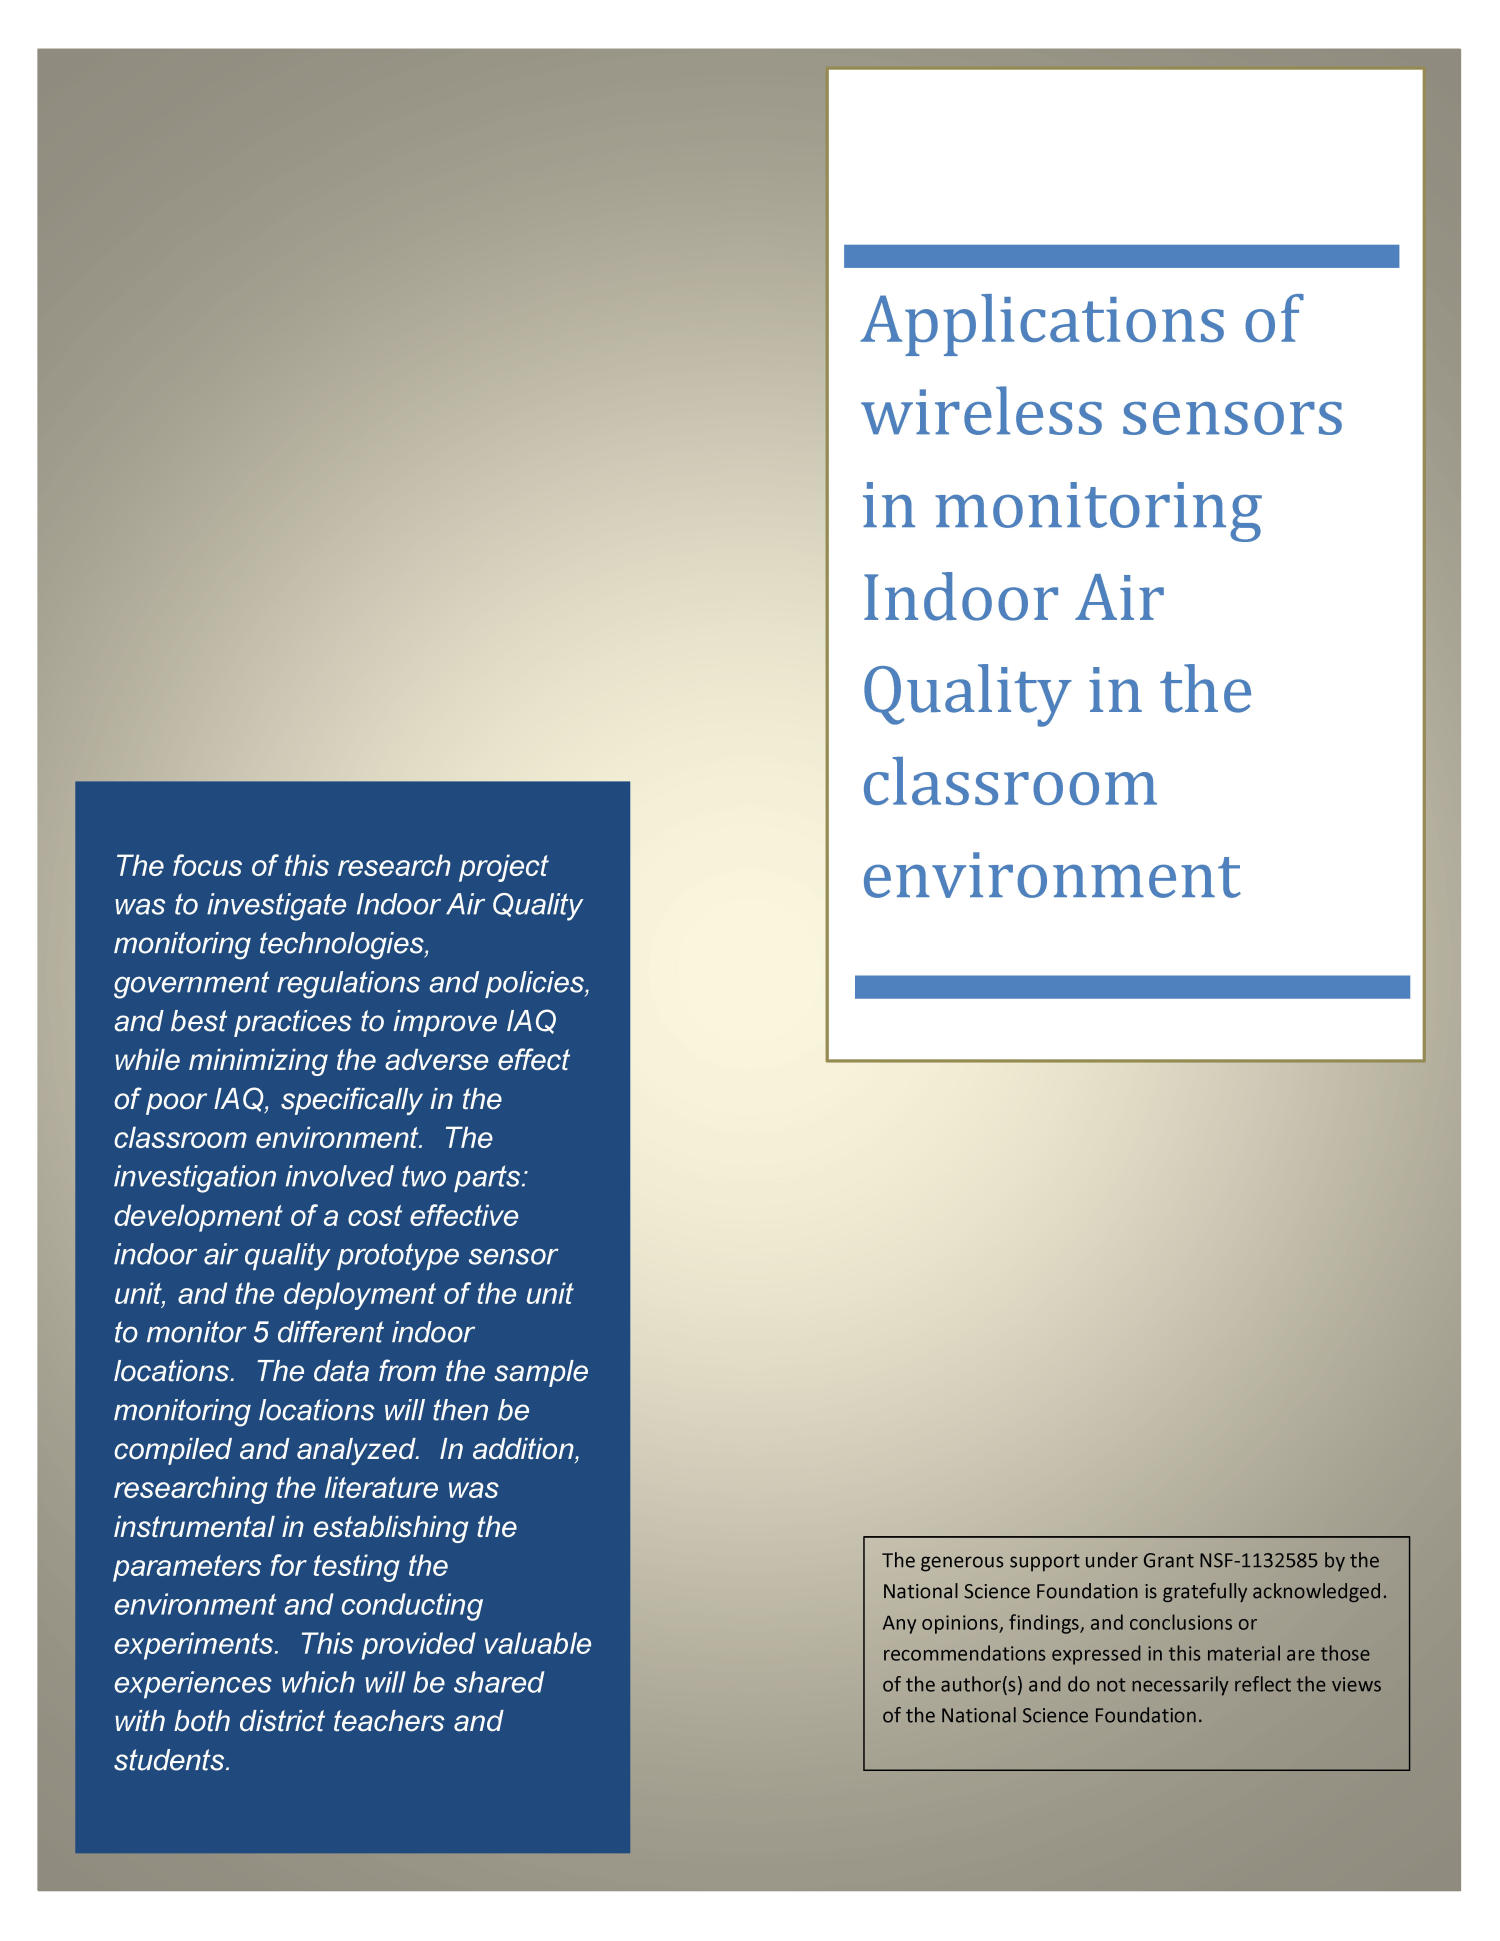 Applications of wireless sensors in monitoring Indoor Air Quality in the classroom environment                                                                                                      Front Cover